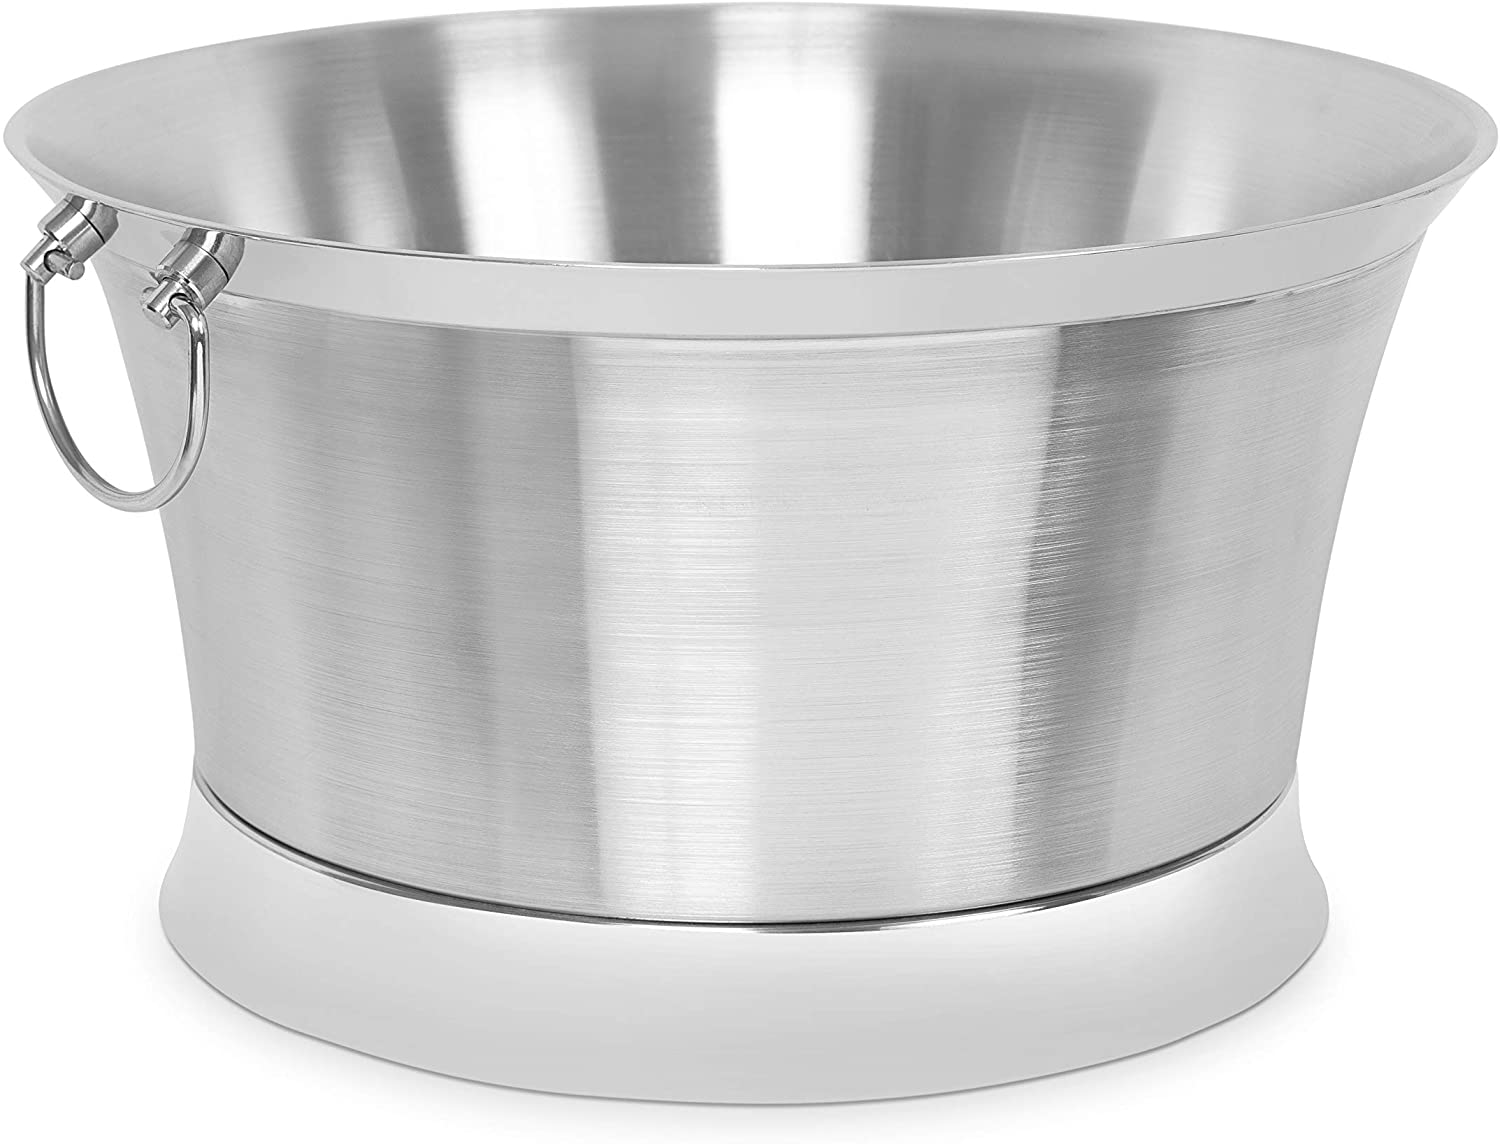 Birdrock Home Double Wall Round Beverage Tub Stainless Steel Large Amazon Ca Home Kitchen